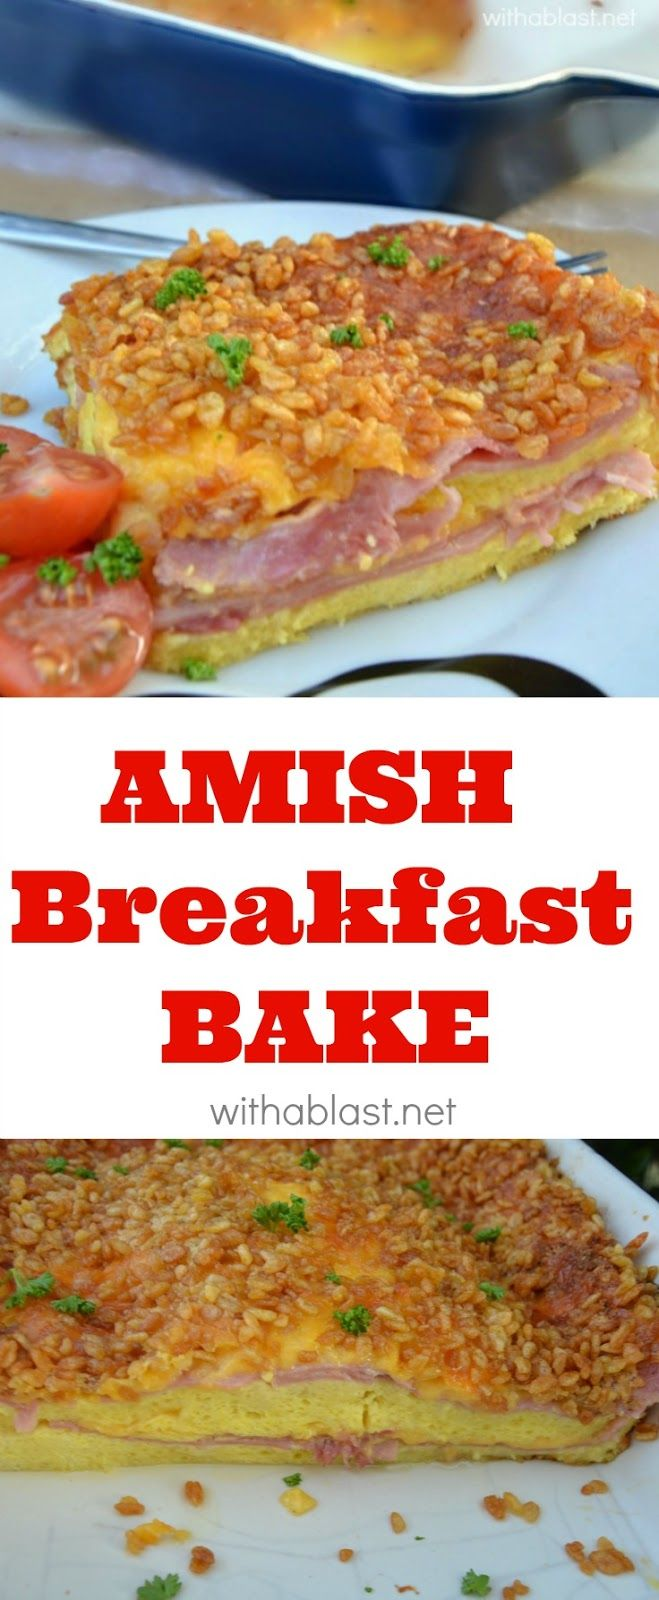 Layers of bread, ham, cheese and an egg mixture results in this fluffy omelette textured layered Amish Breakfast Bake - absolutely scrumptious and I love the quick prepping too - by the time the oven is heated, the dish is also ready to be baked